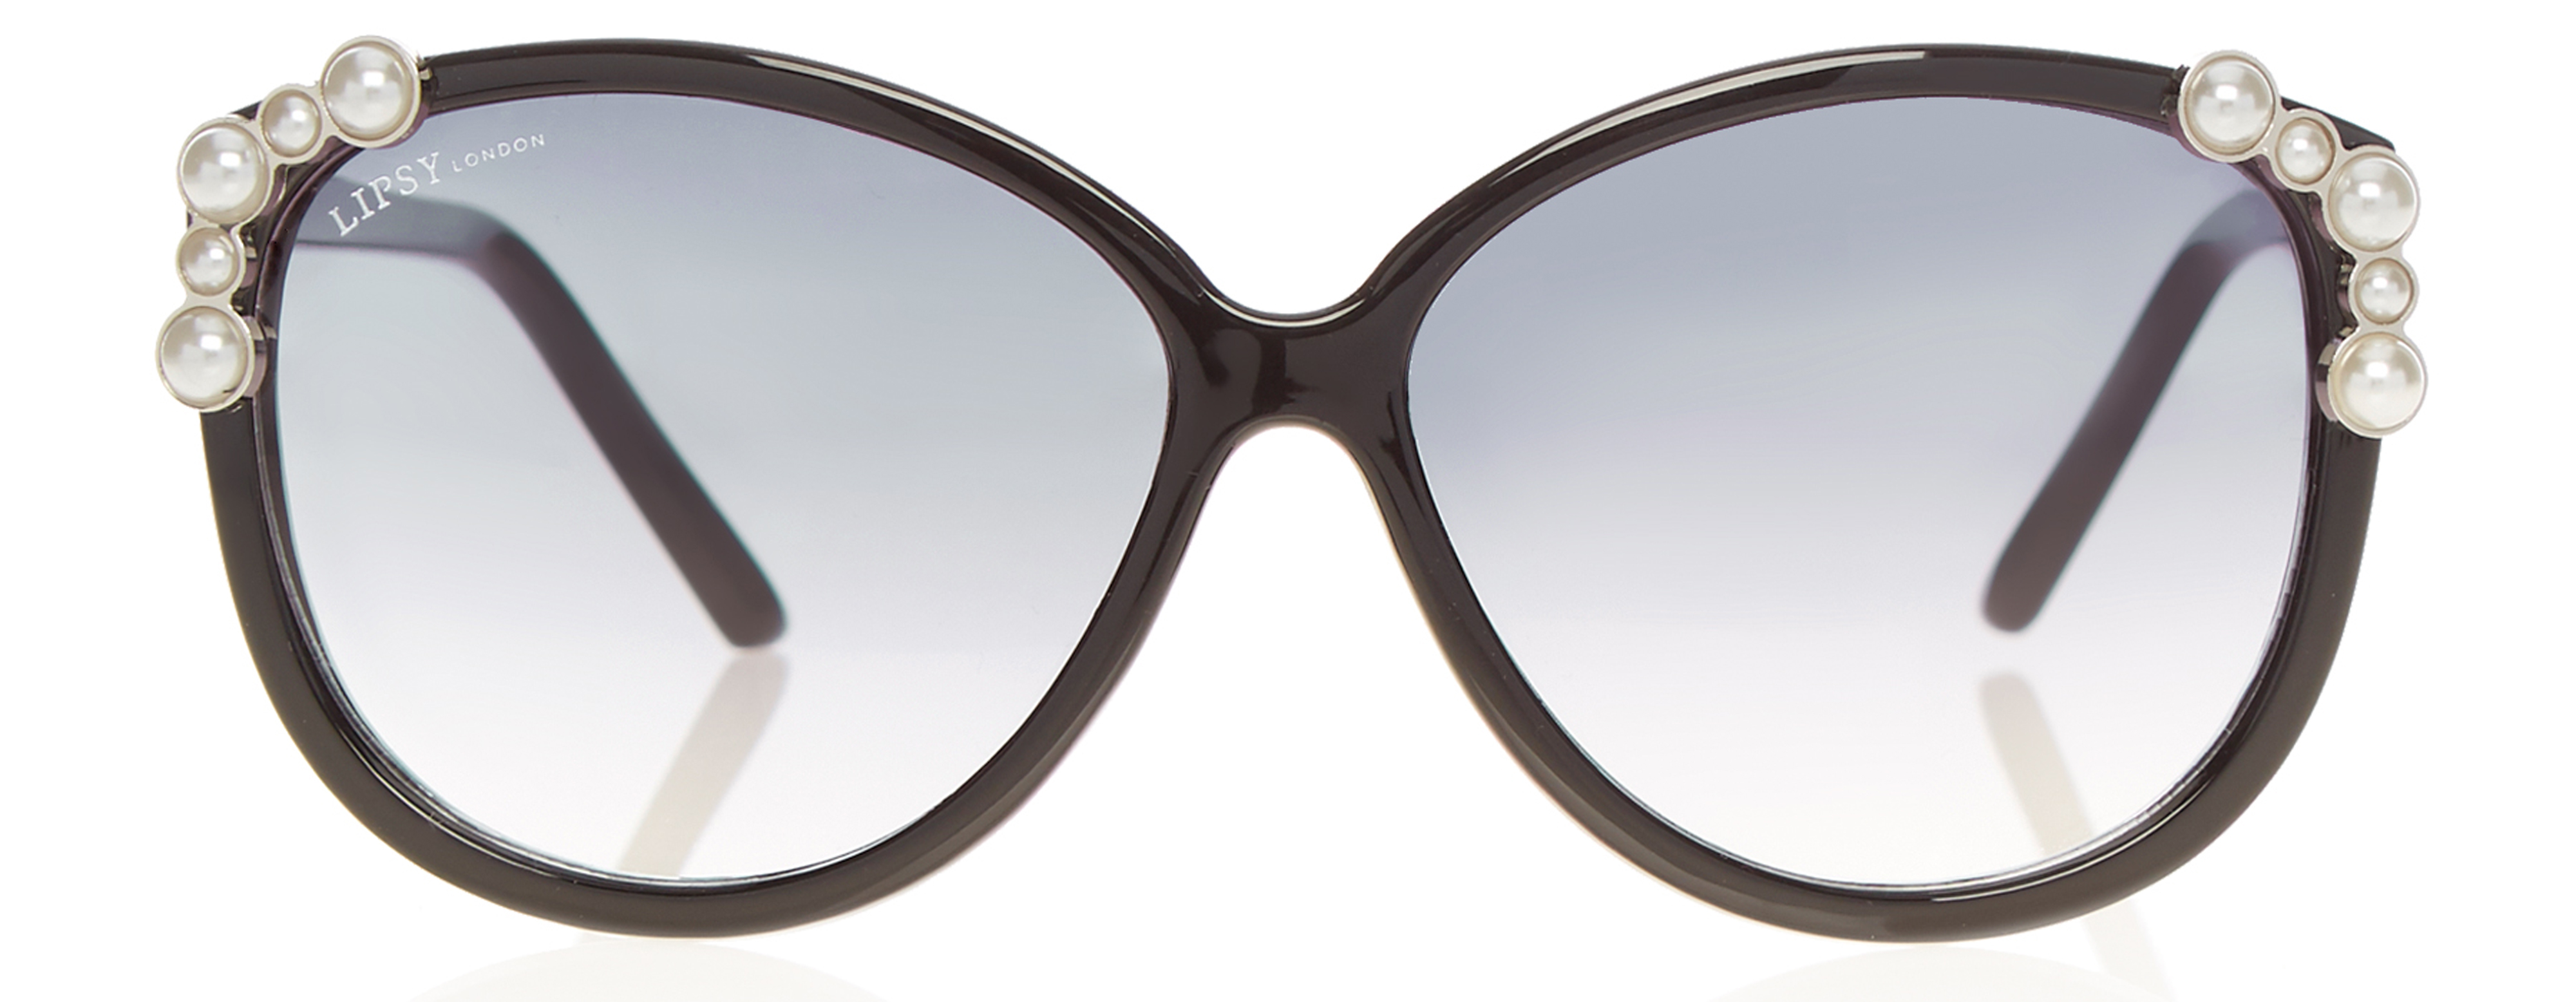 c575f321f 9 of the coolest sunglasses to be seen in this summer - Beauty from ...